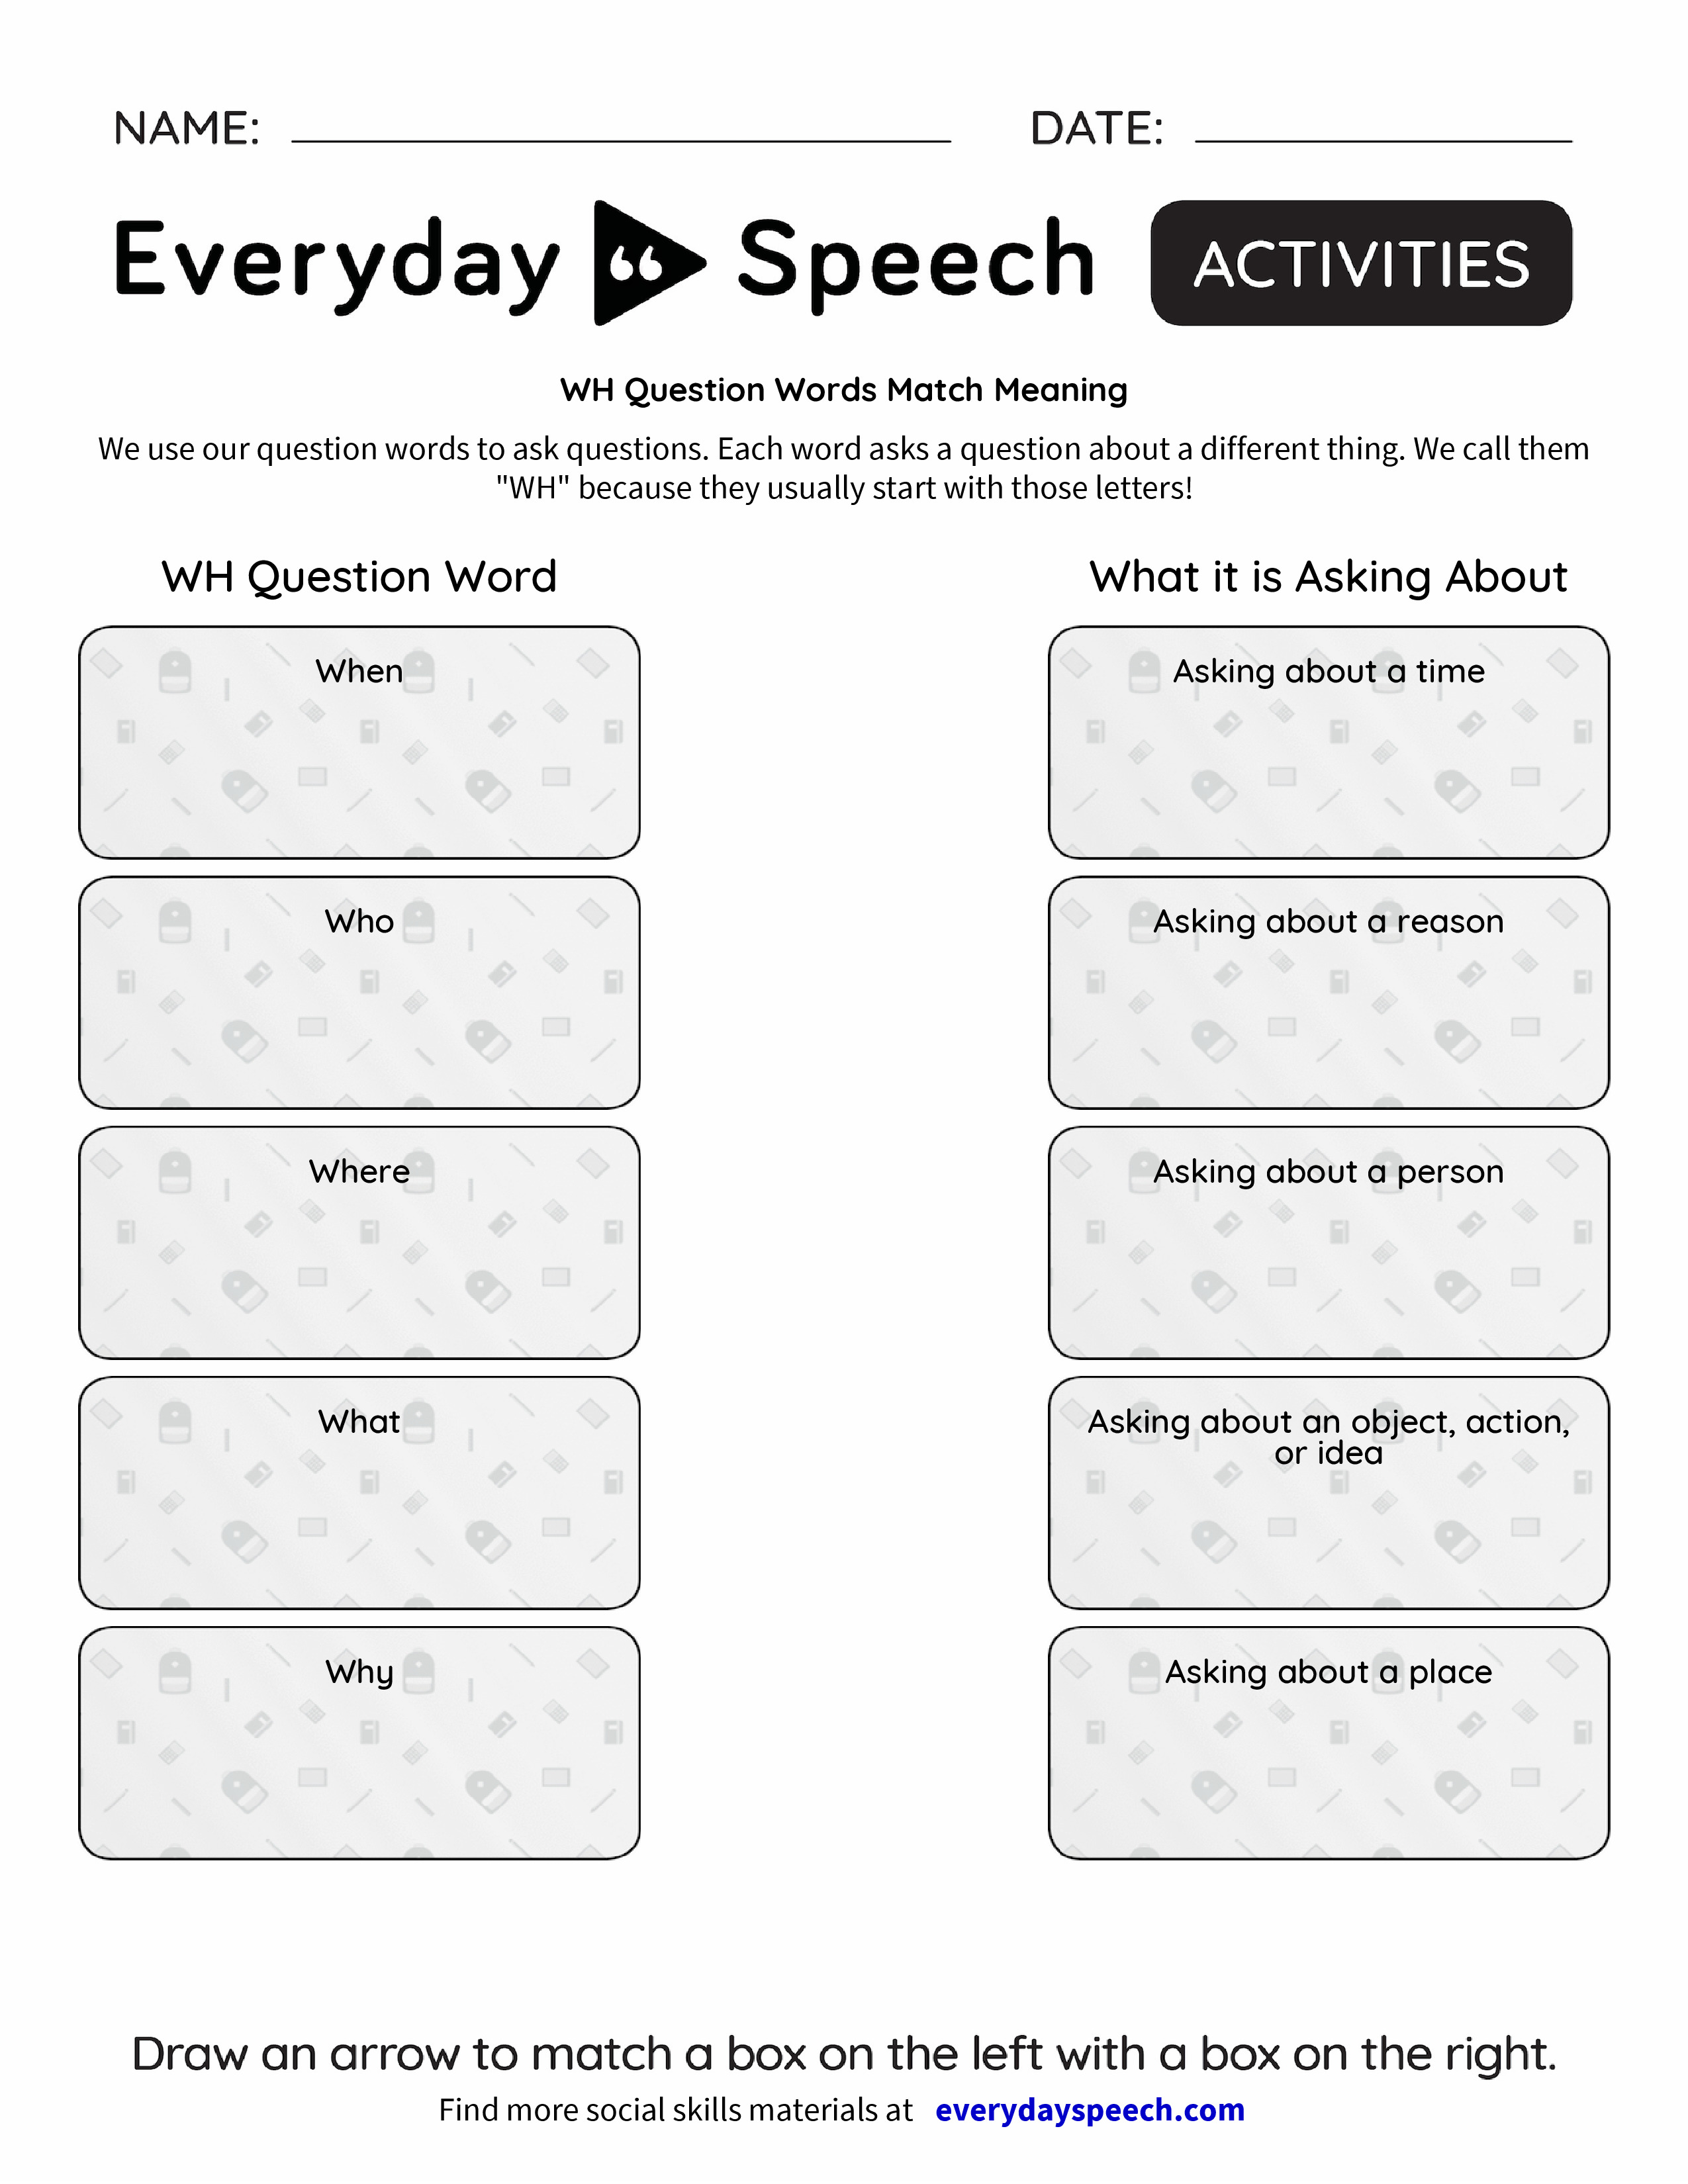 Wh question words match meaning everyday speech for Minimalist living a meaningful life pdf